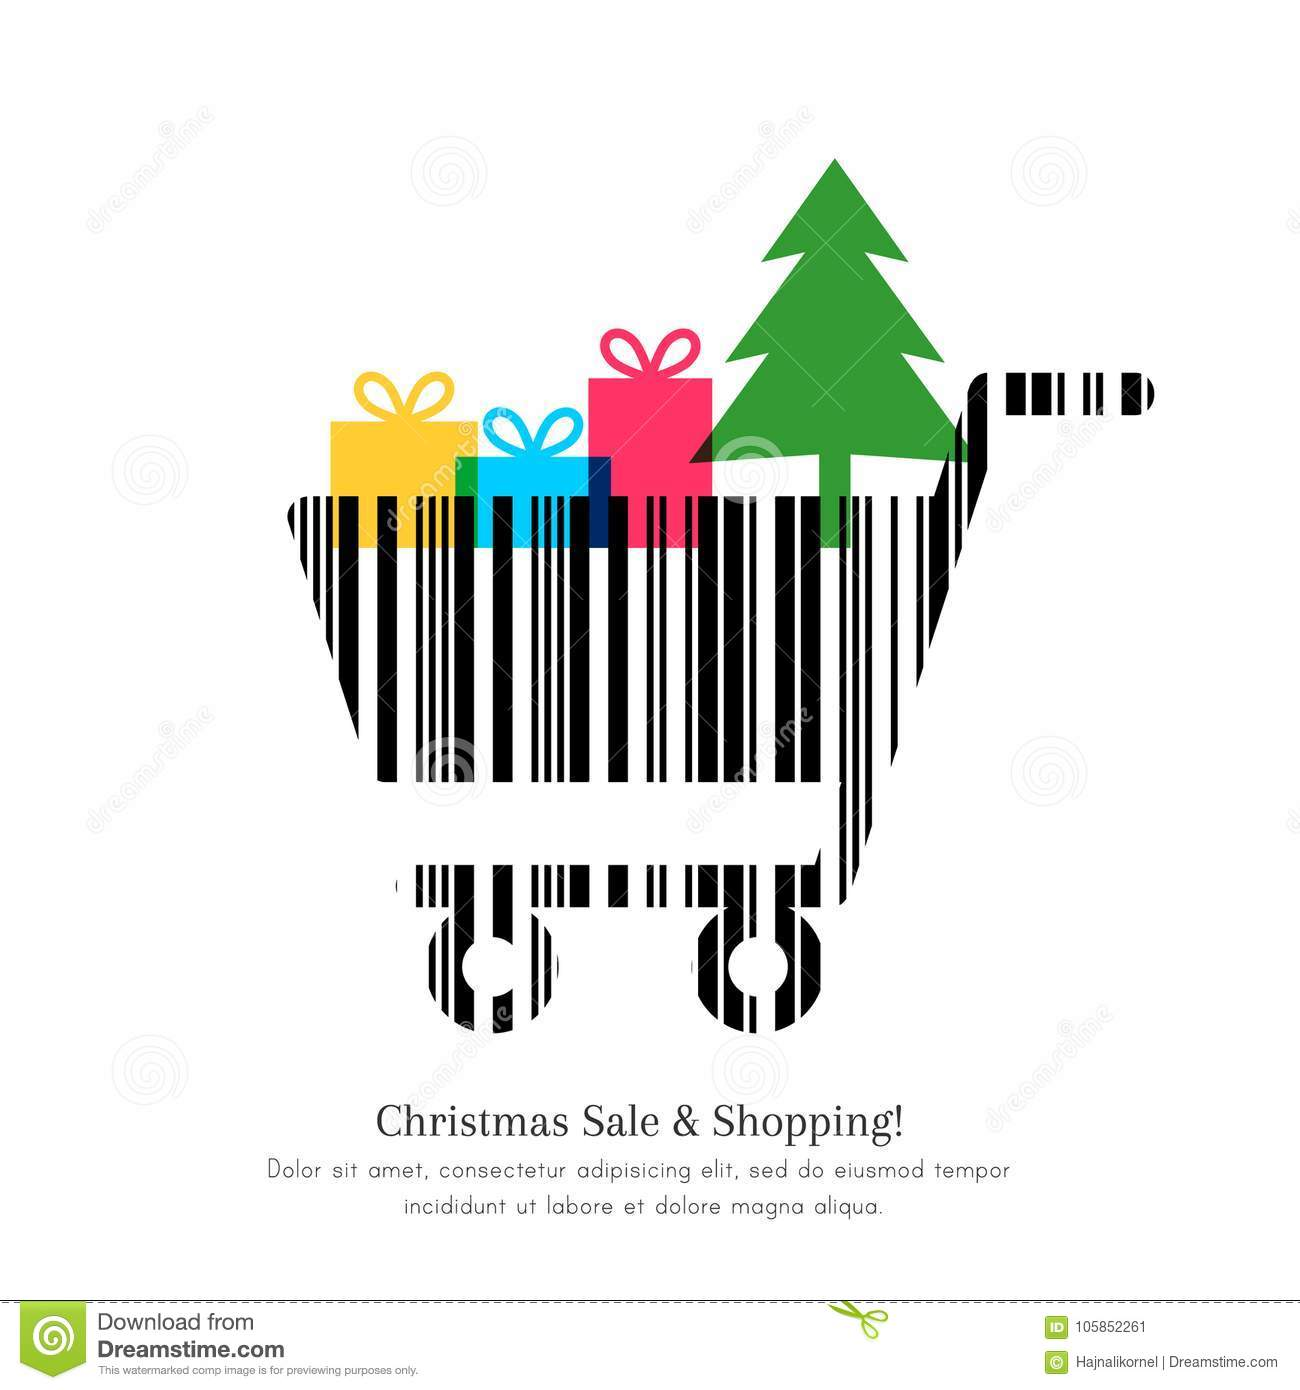 Christmas Sale And Shopping Concept Stock Vector - Illustration of ...